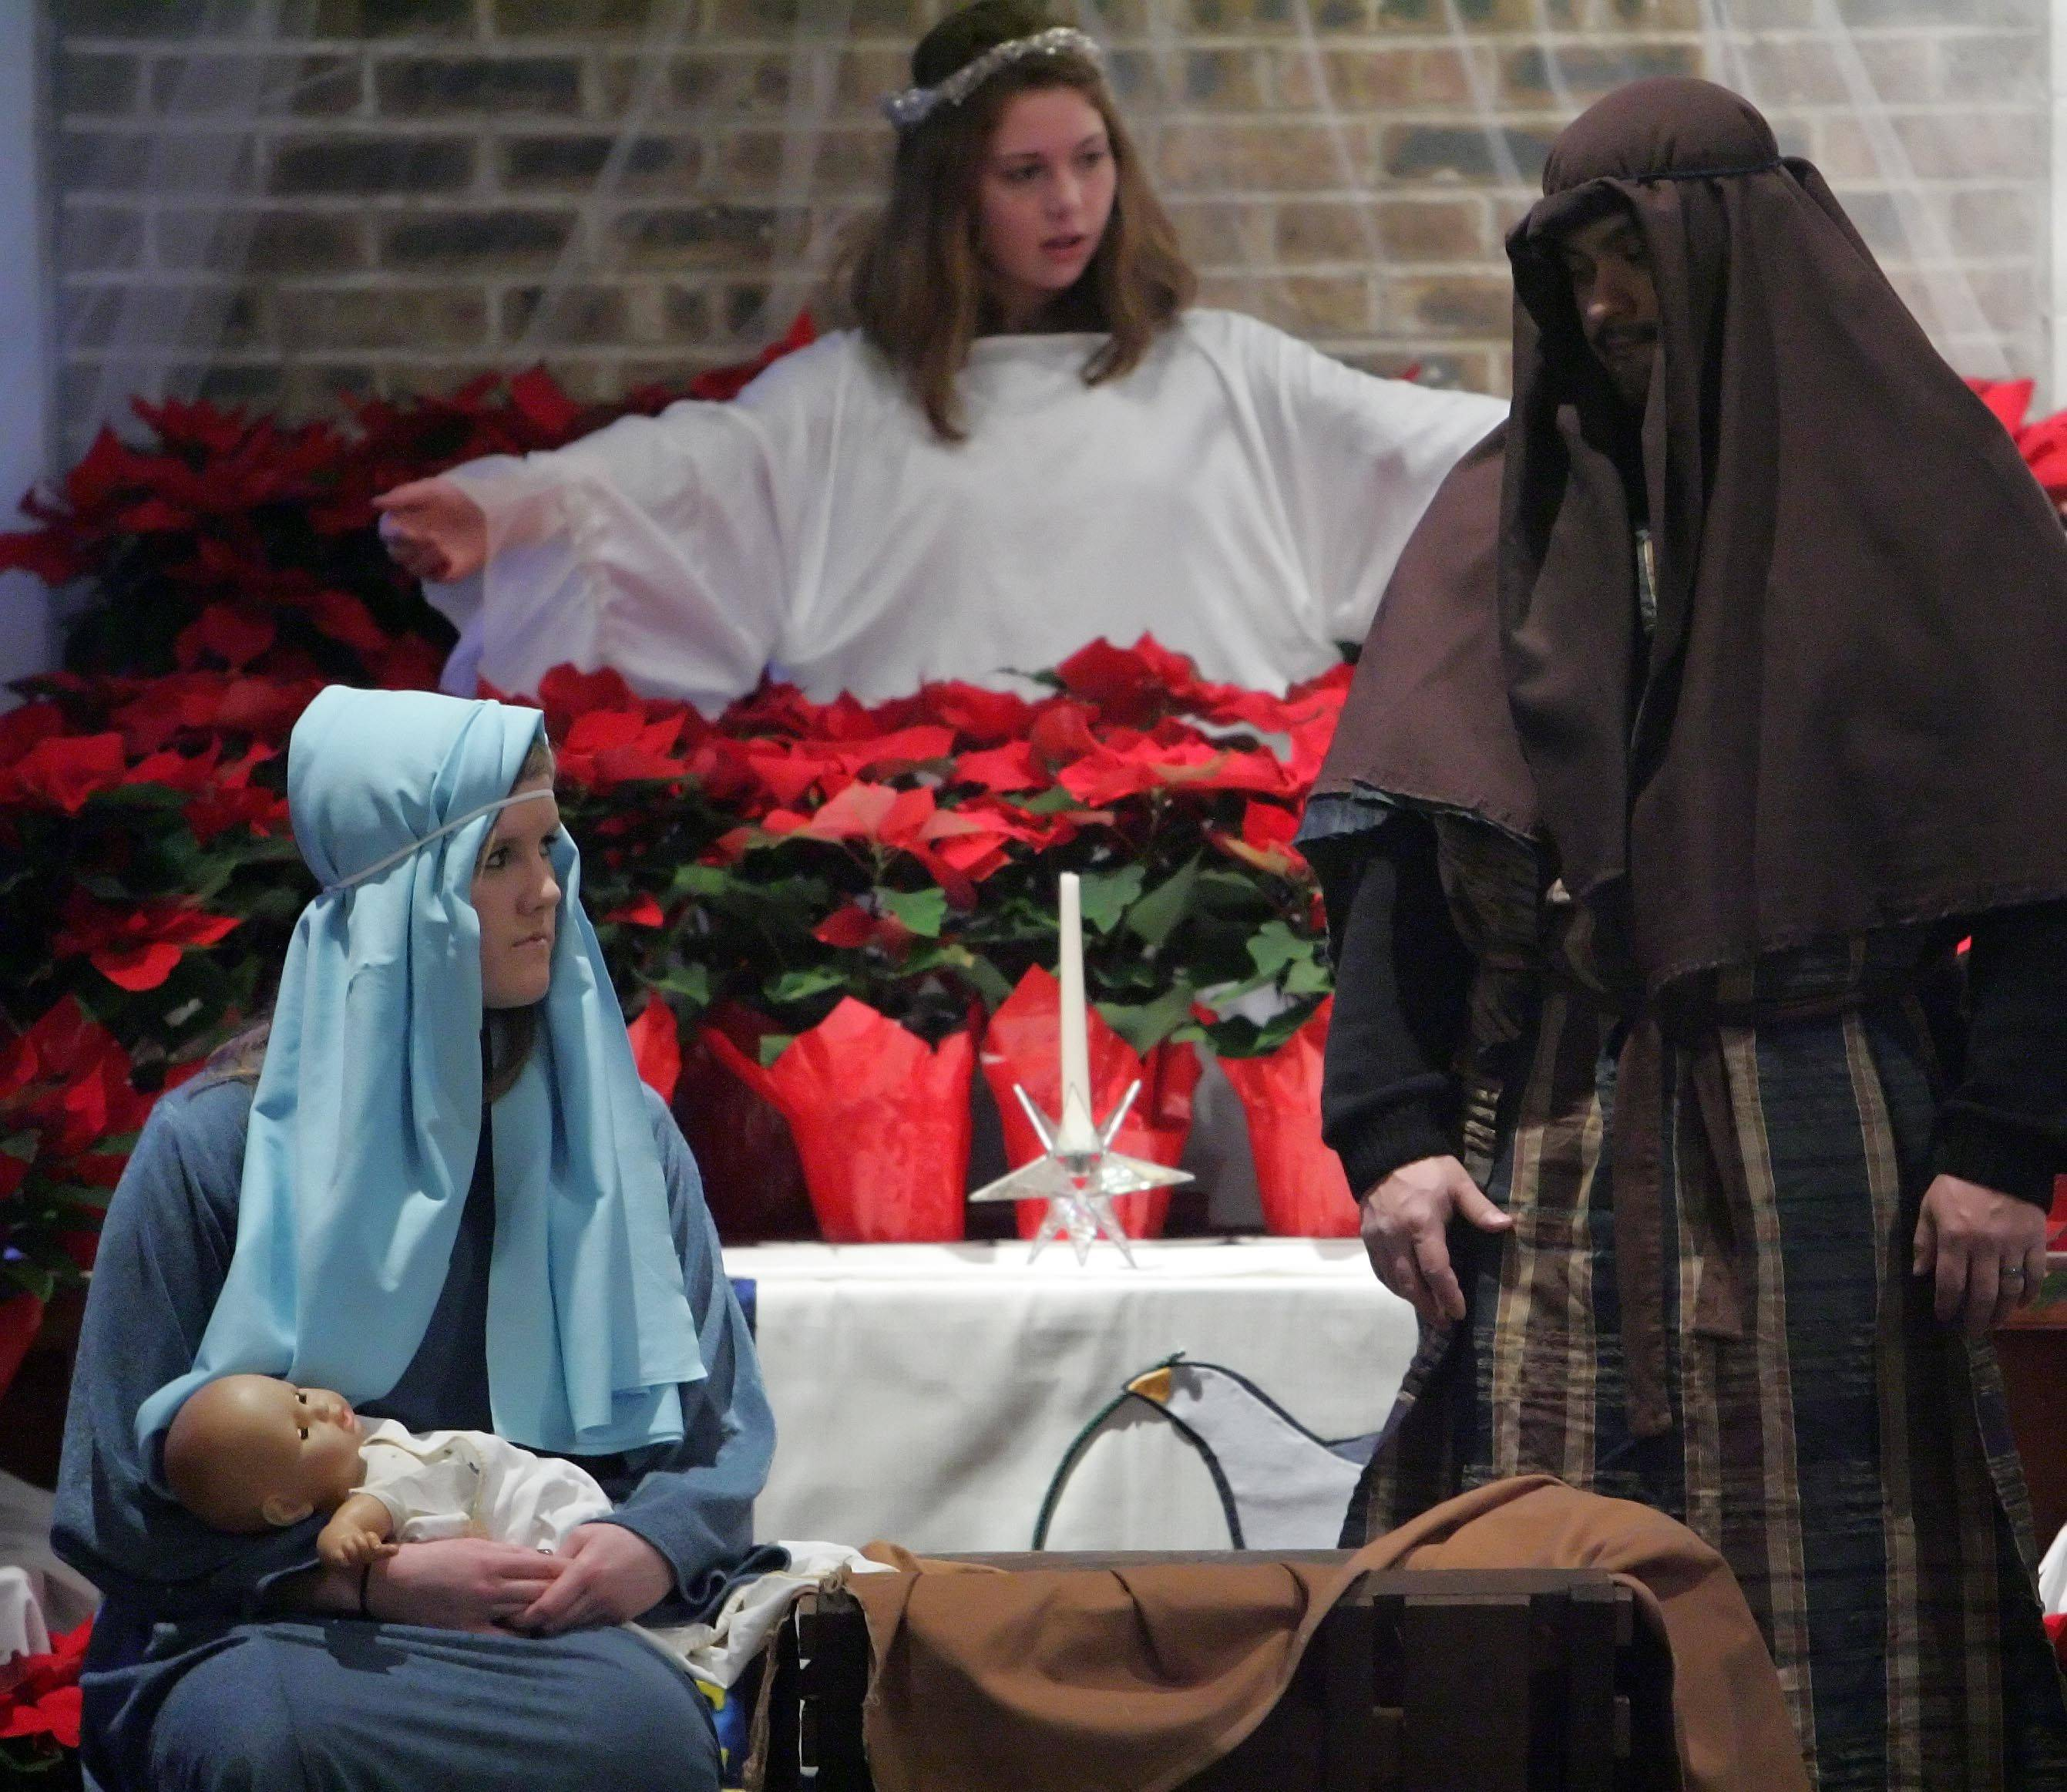 Maddie Loeffler, front left, portrays Mary, Josue Aguilar, portrays Joseph and Hannah Rose, portrays an angel in the living nativity scene at United Church of Christ in Arlington Heights Chrismtas Eve.